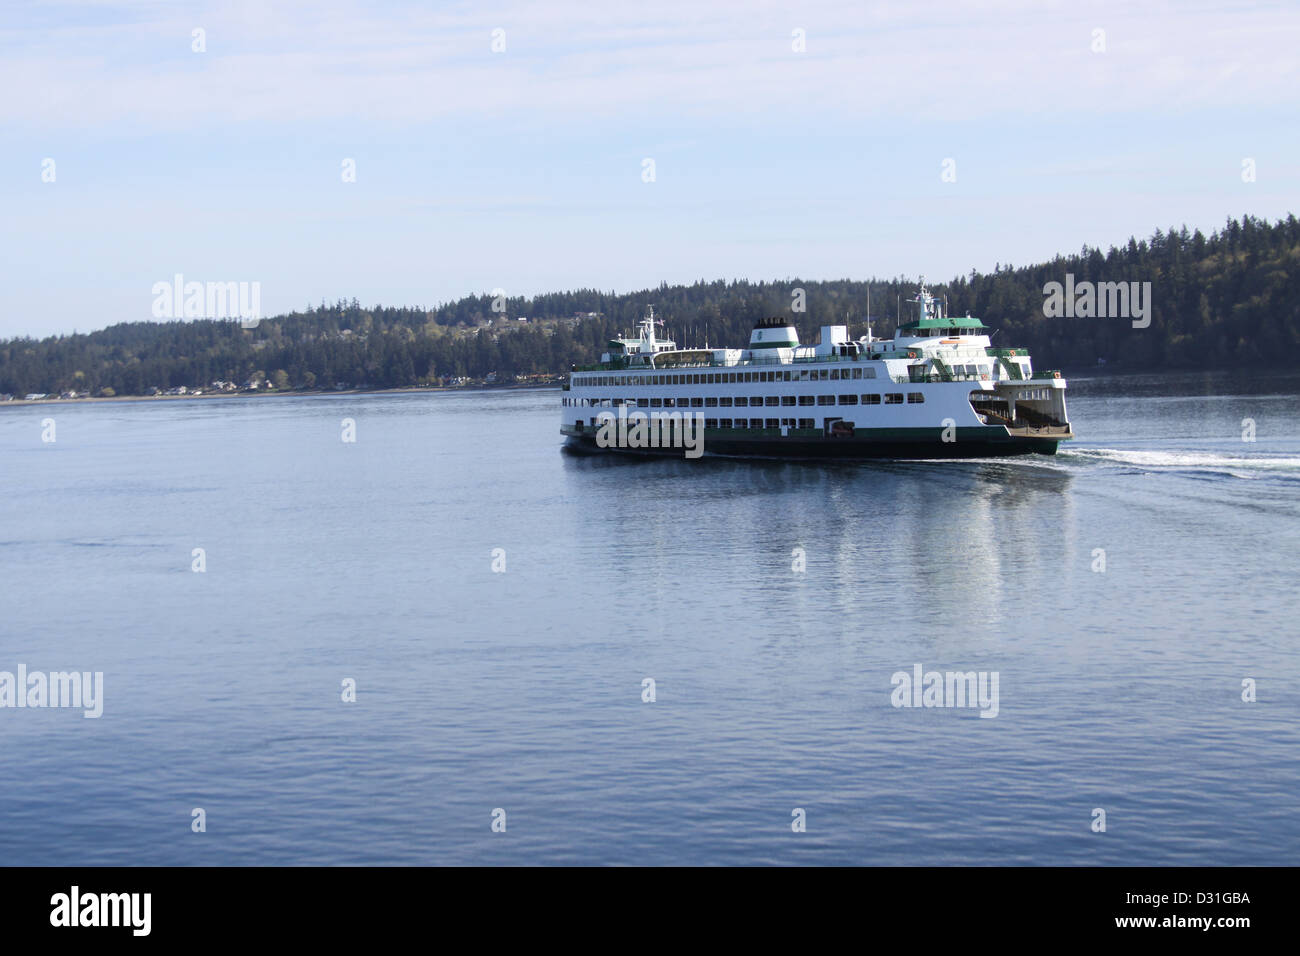 A Washington State ferry, in Puget Sound near Seattle. - Stock Image